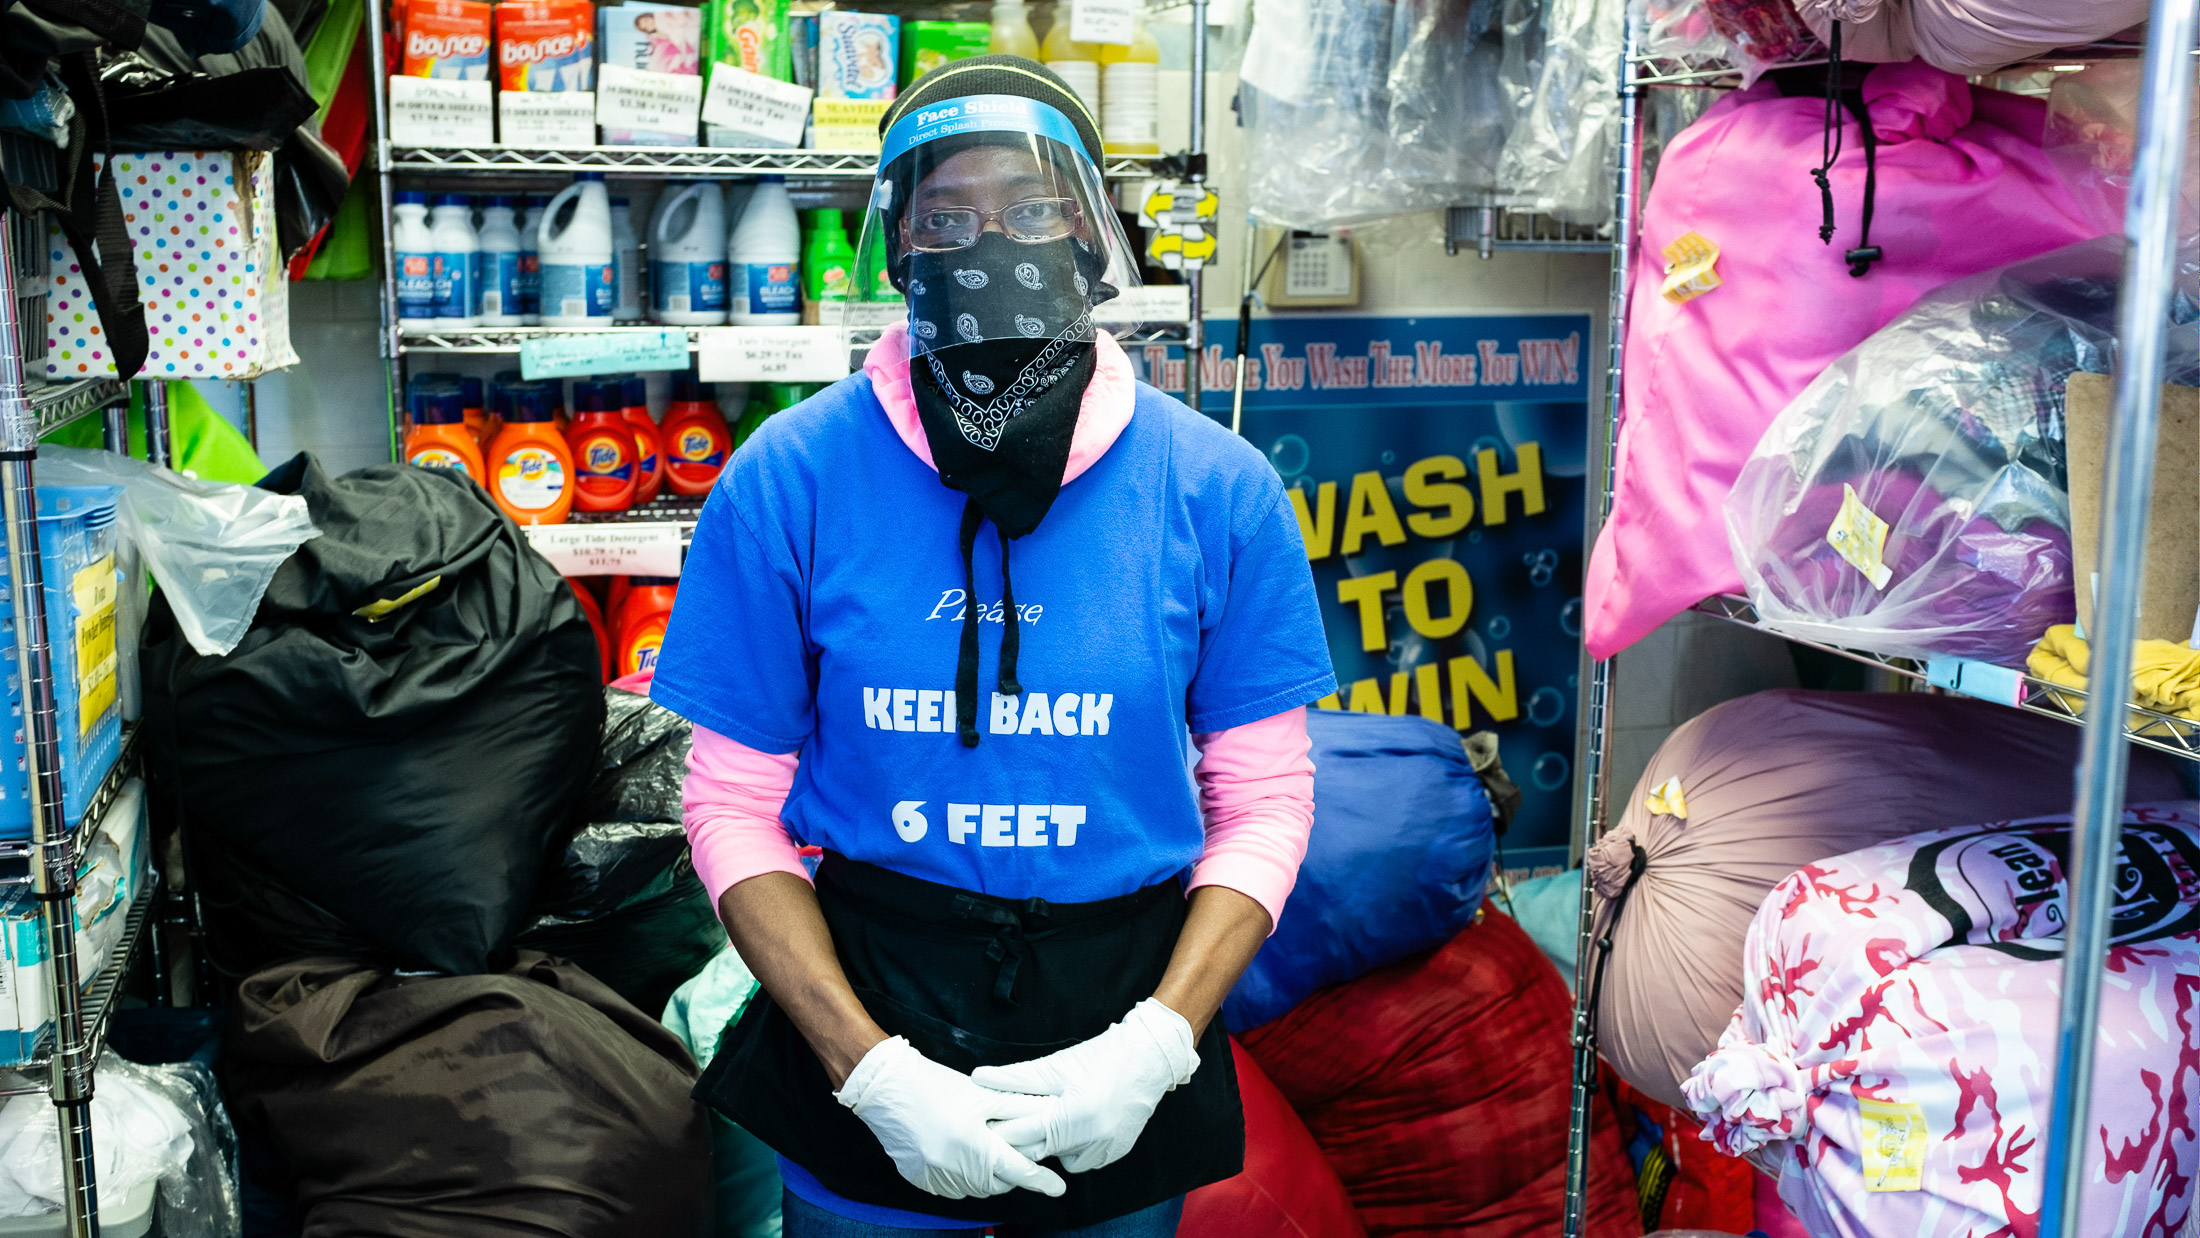 Laundromat attendant with face shield and T-shirt